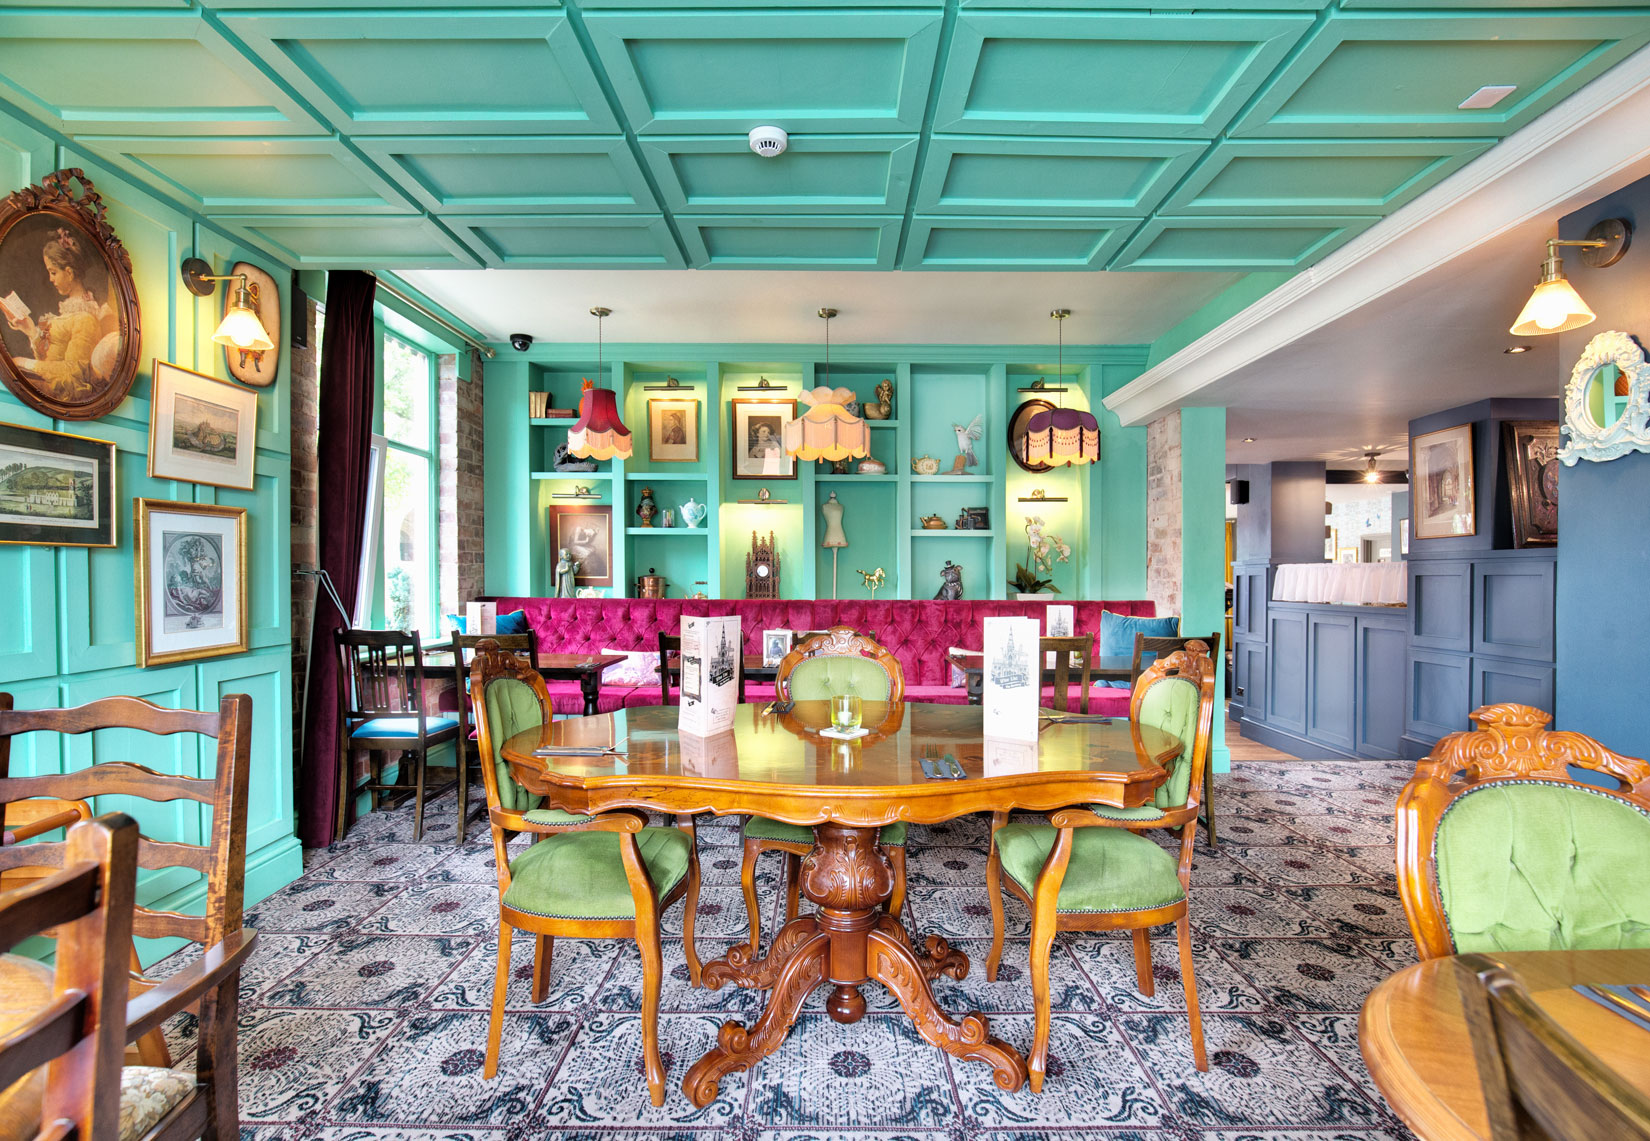 Pub restaurant interior Photography located in Chesterfield, fuchsia pink velvet green wall and floor panelling by interior photographer Matthew Jones